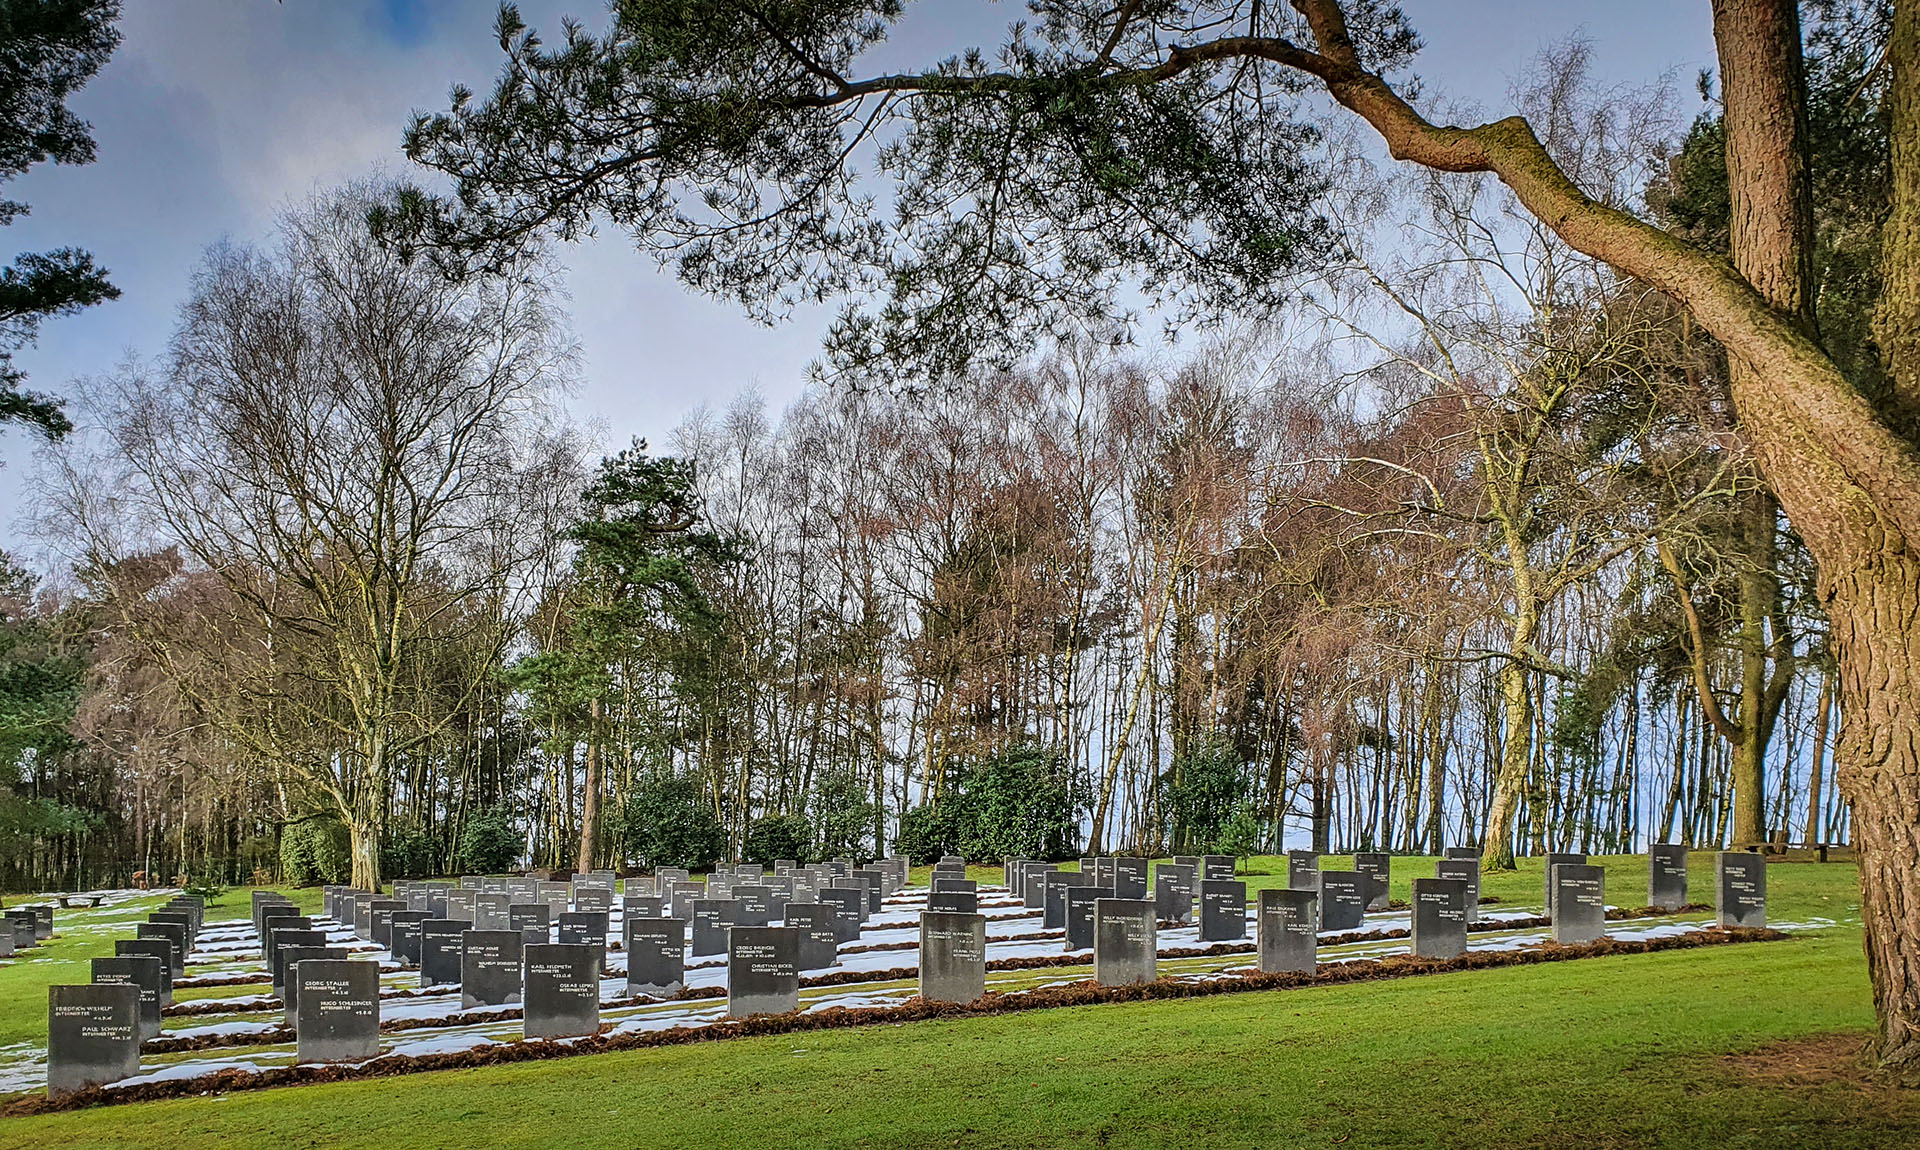 The Cannock Chase German Cemetery, established in 1959 as the burial ground for all German nationals dying on British soil in both world wars, and not buried in other sites